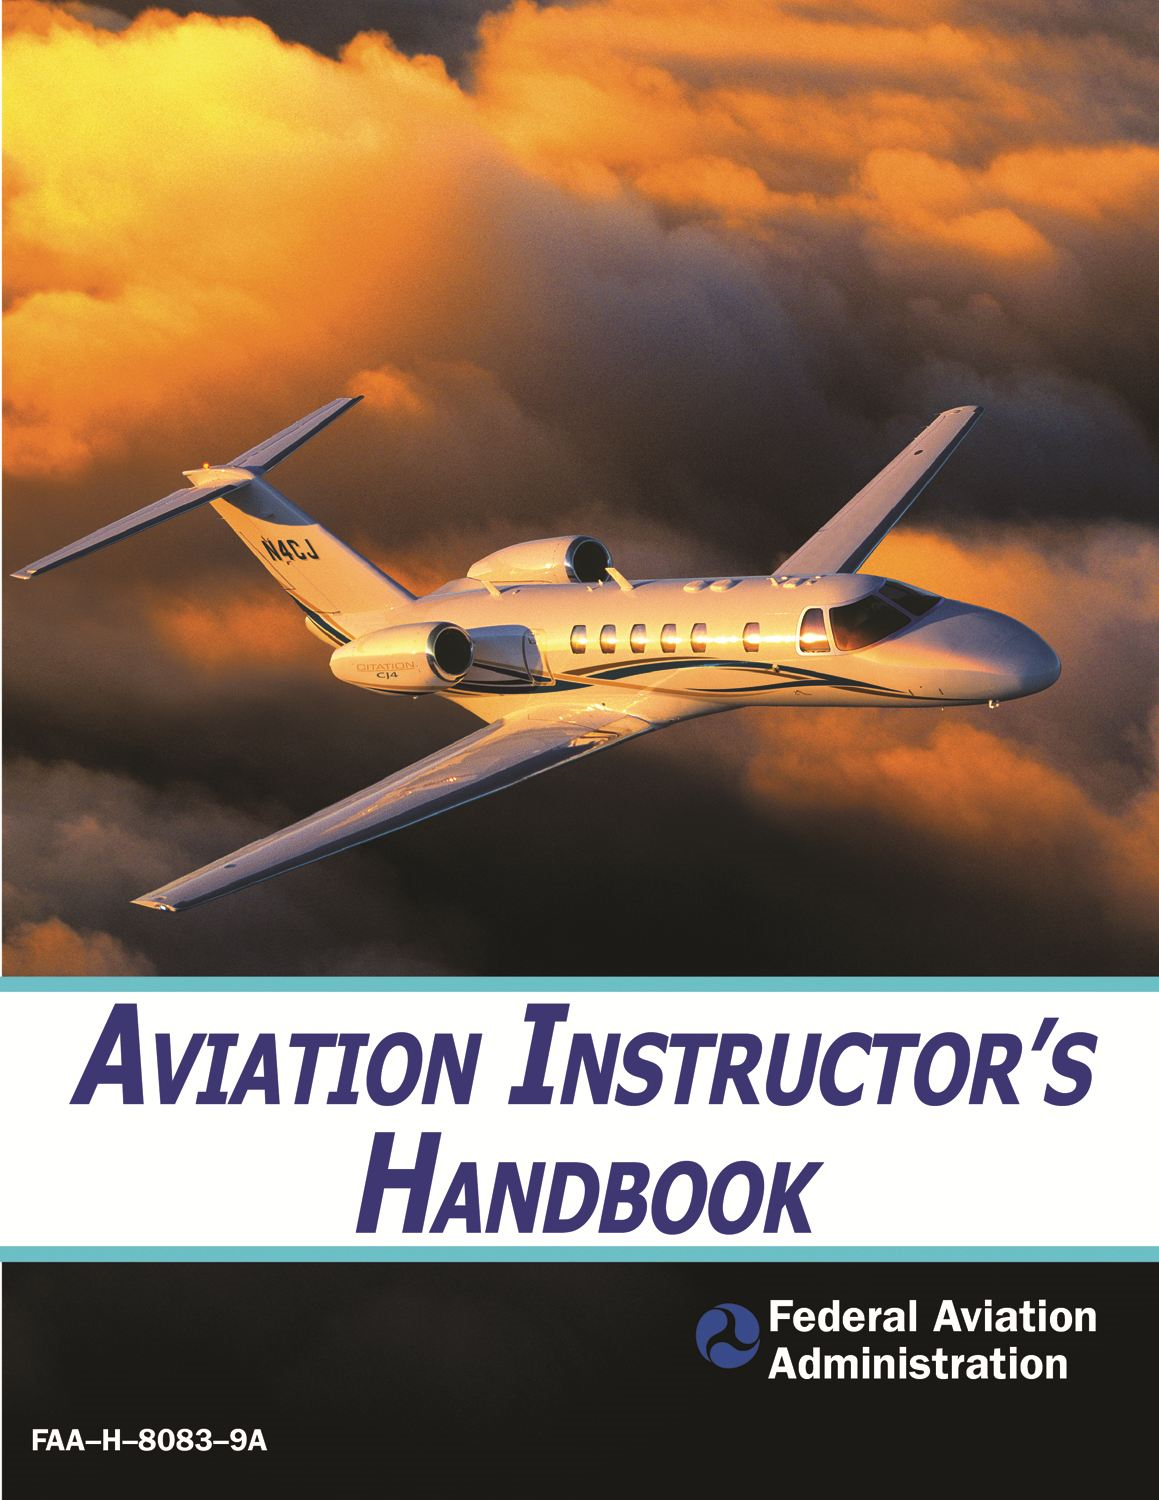 Aviation Instructor's Handbook By: The Federal Aviation Administration